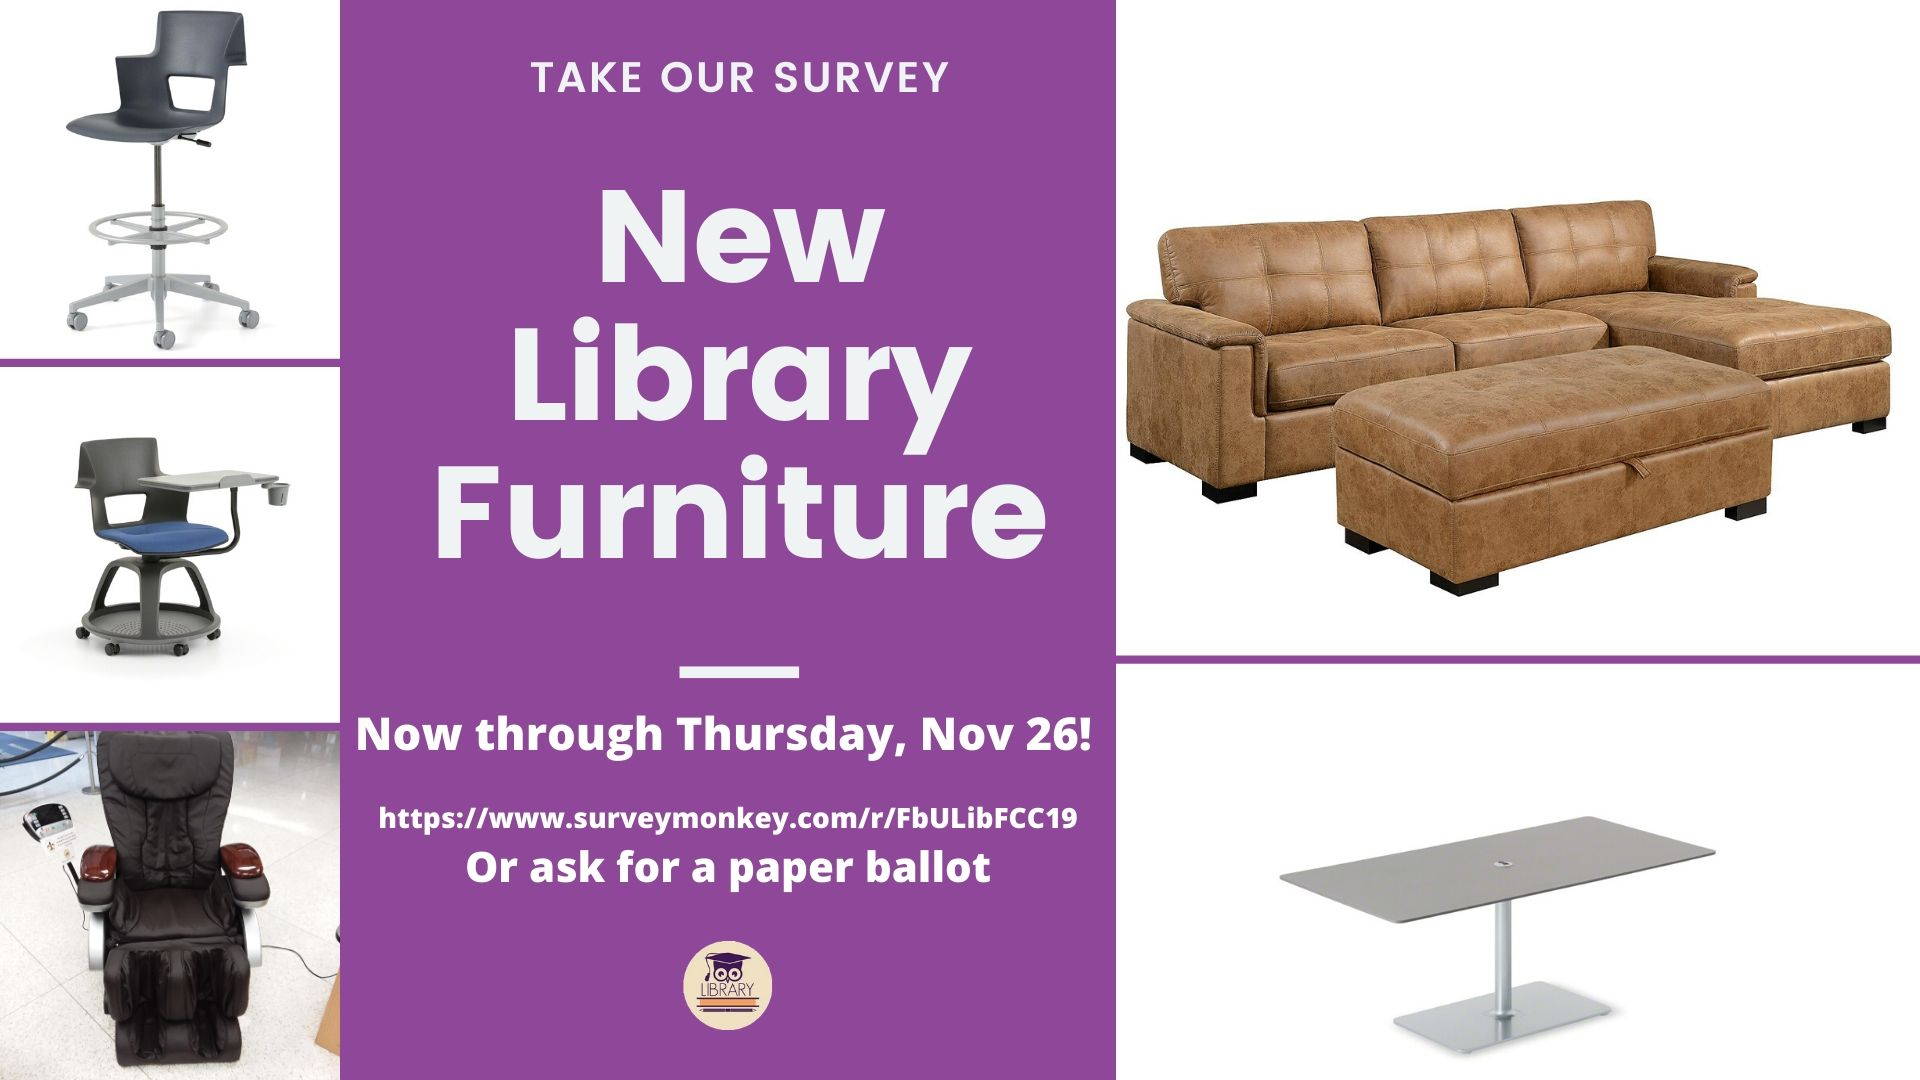 Vote on new furniture for the library